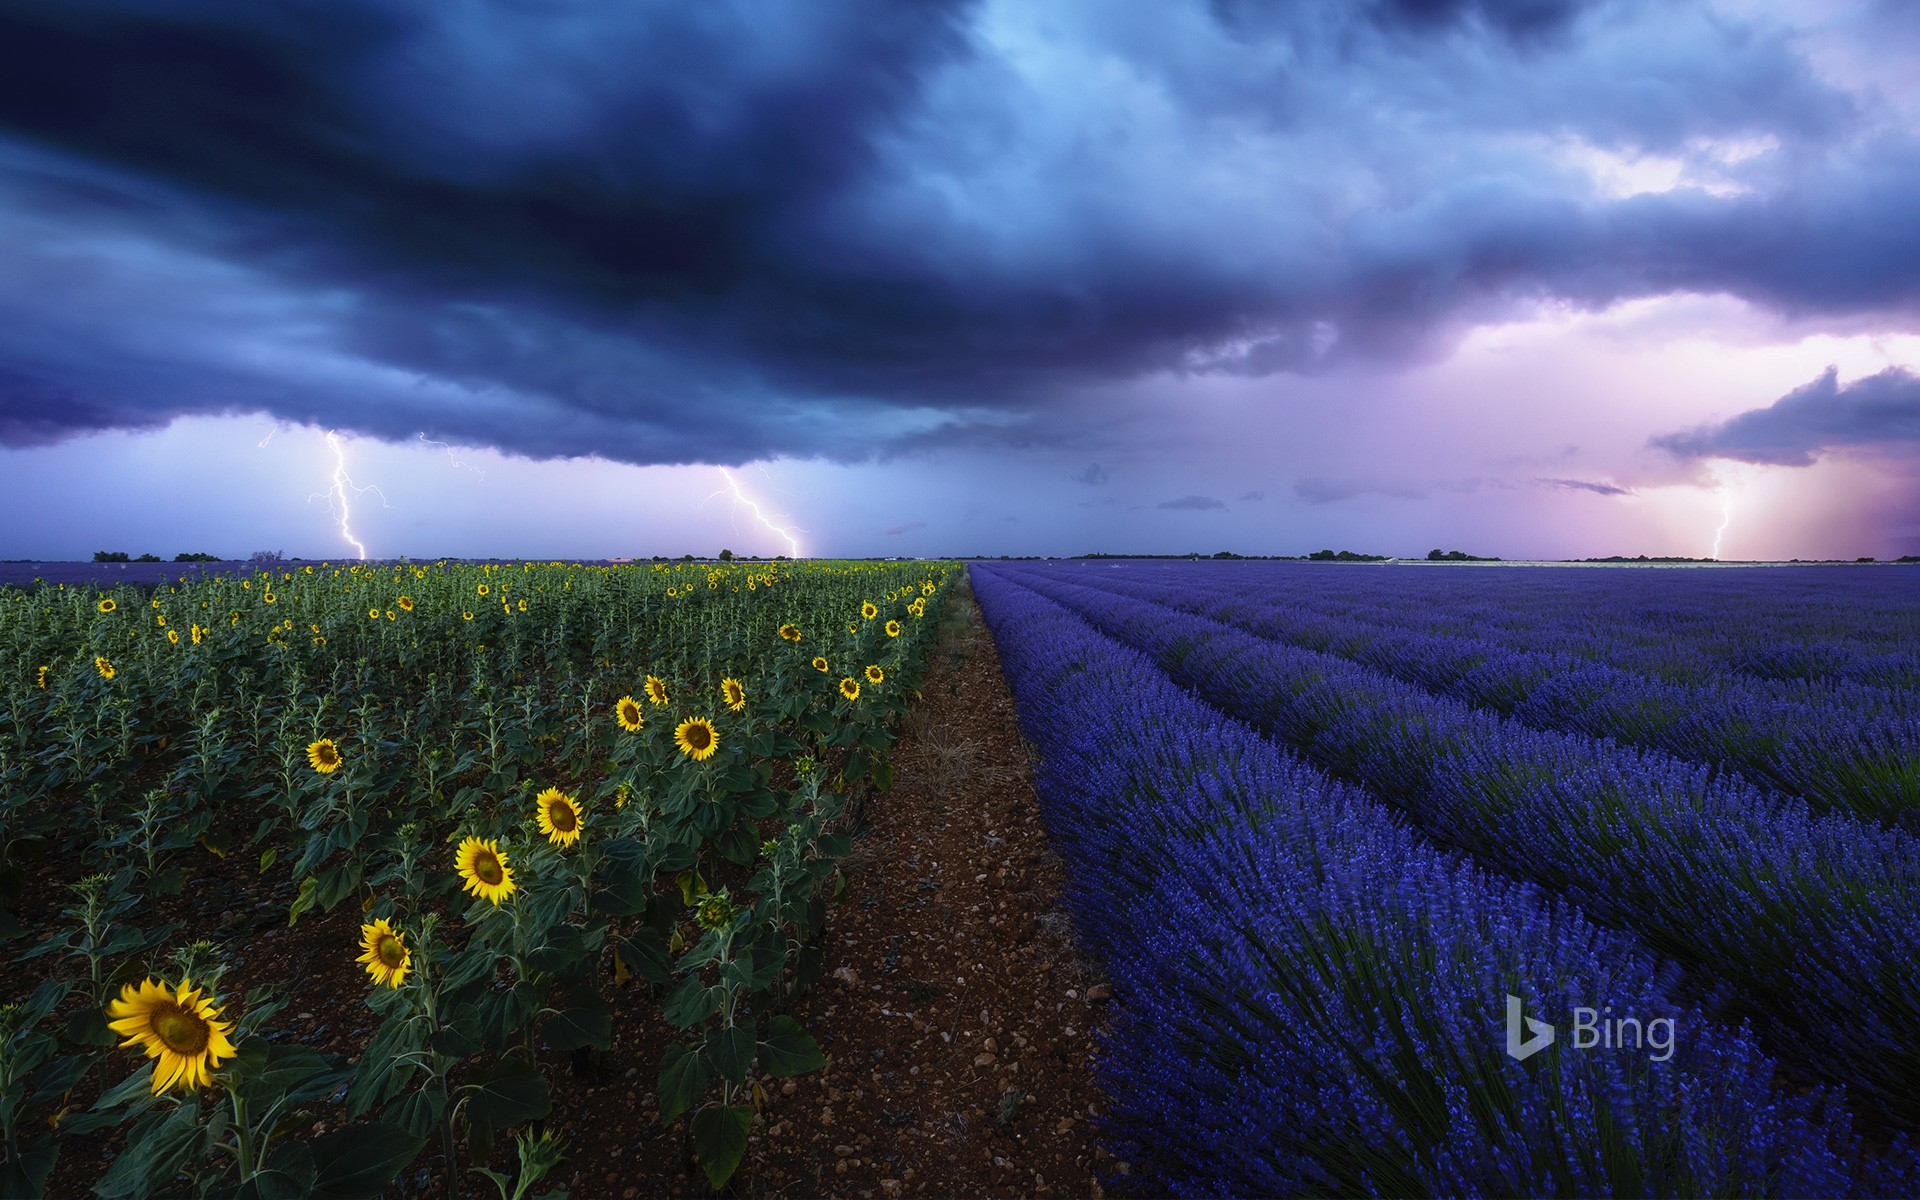 Lavender and sunflower fields under a stormy sky in Provence, France